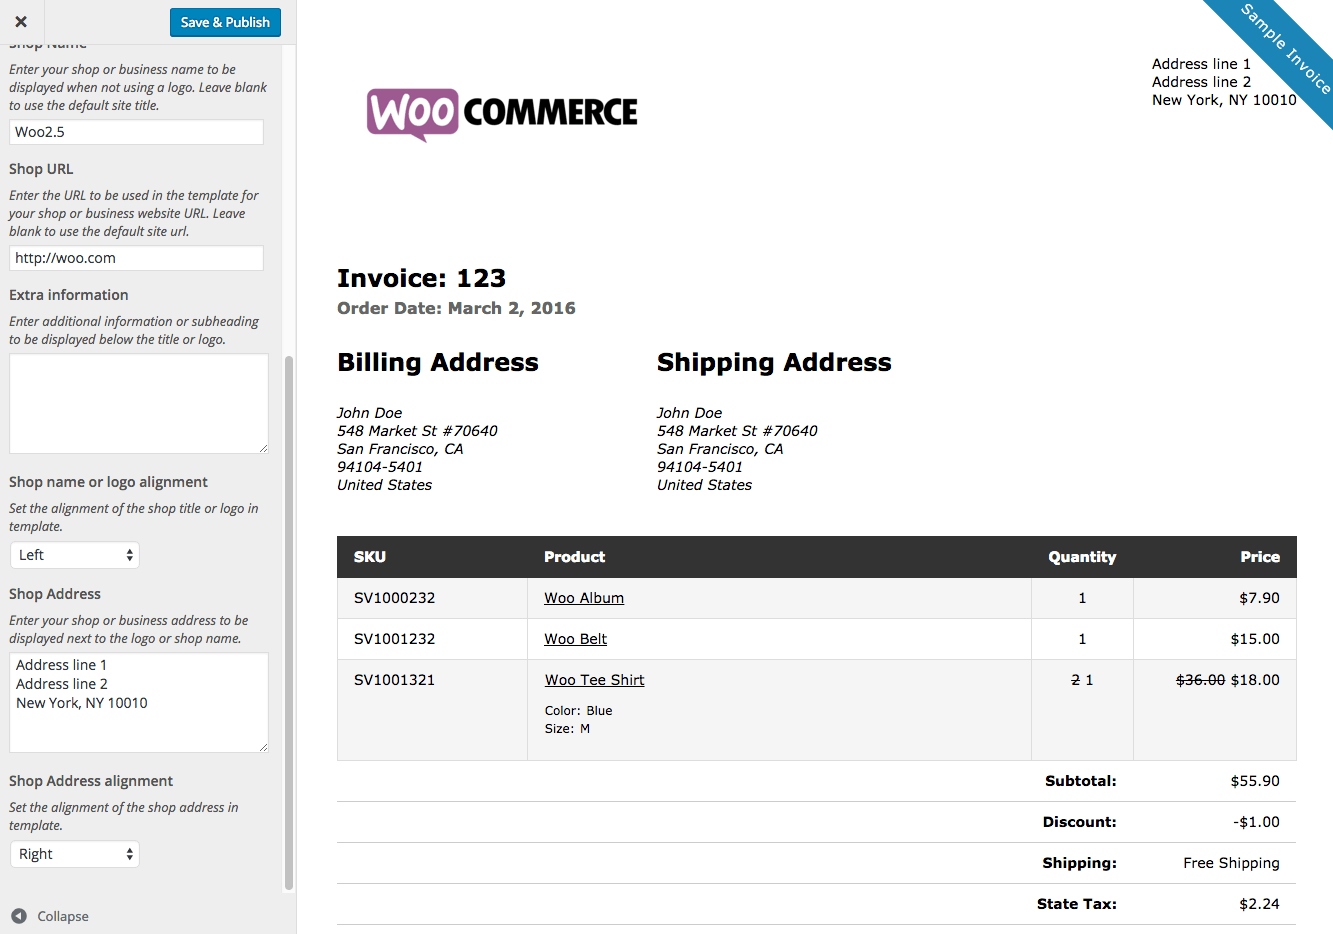 Shopdesignsus  Wonderful Woocommerce Print Invoices Amp Packing Lists  Woocommerce Docs With Handsome Woocommerce Print Invoices  Packing Lists Customizer With Attractive Invoice Factoring Company Also Google Docs Invoice In Addition Free Invoicing And Invoice Printing As Well As Invoice Processing Additionally Example Invoice From Docswoocommercecom With Shopdesignsus  Handsome Woocommerce Print Invoices Amp Packing Lists  Woocommerce Docs With Attractive Woocommerce Print Invoices  Packing Lists Customizer And Wonderful Invoice Factoring Company Also Google Docs Invoice In Addition Free Invoicing From Docswoocommercecom